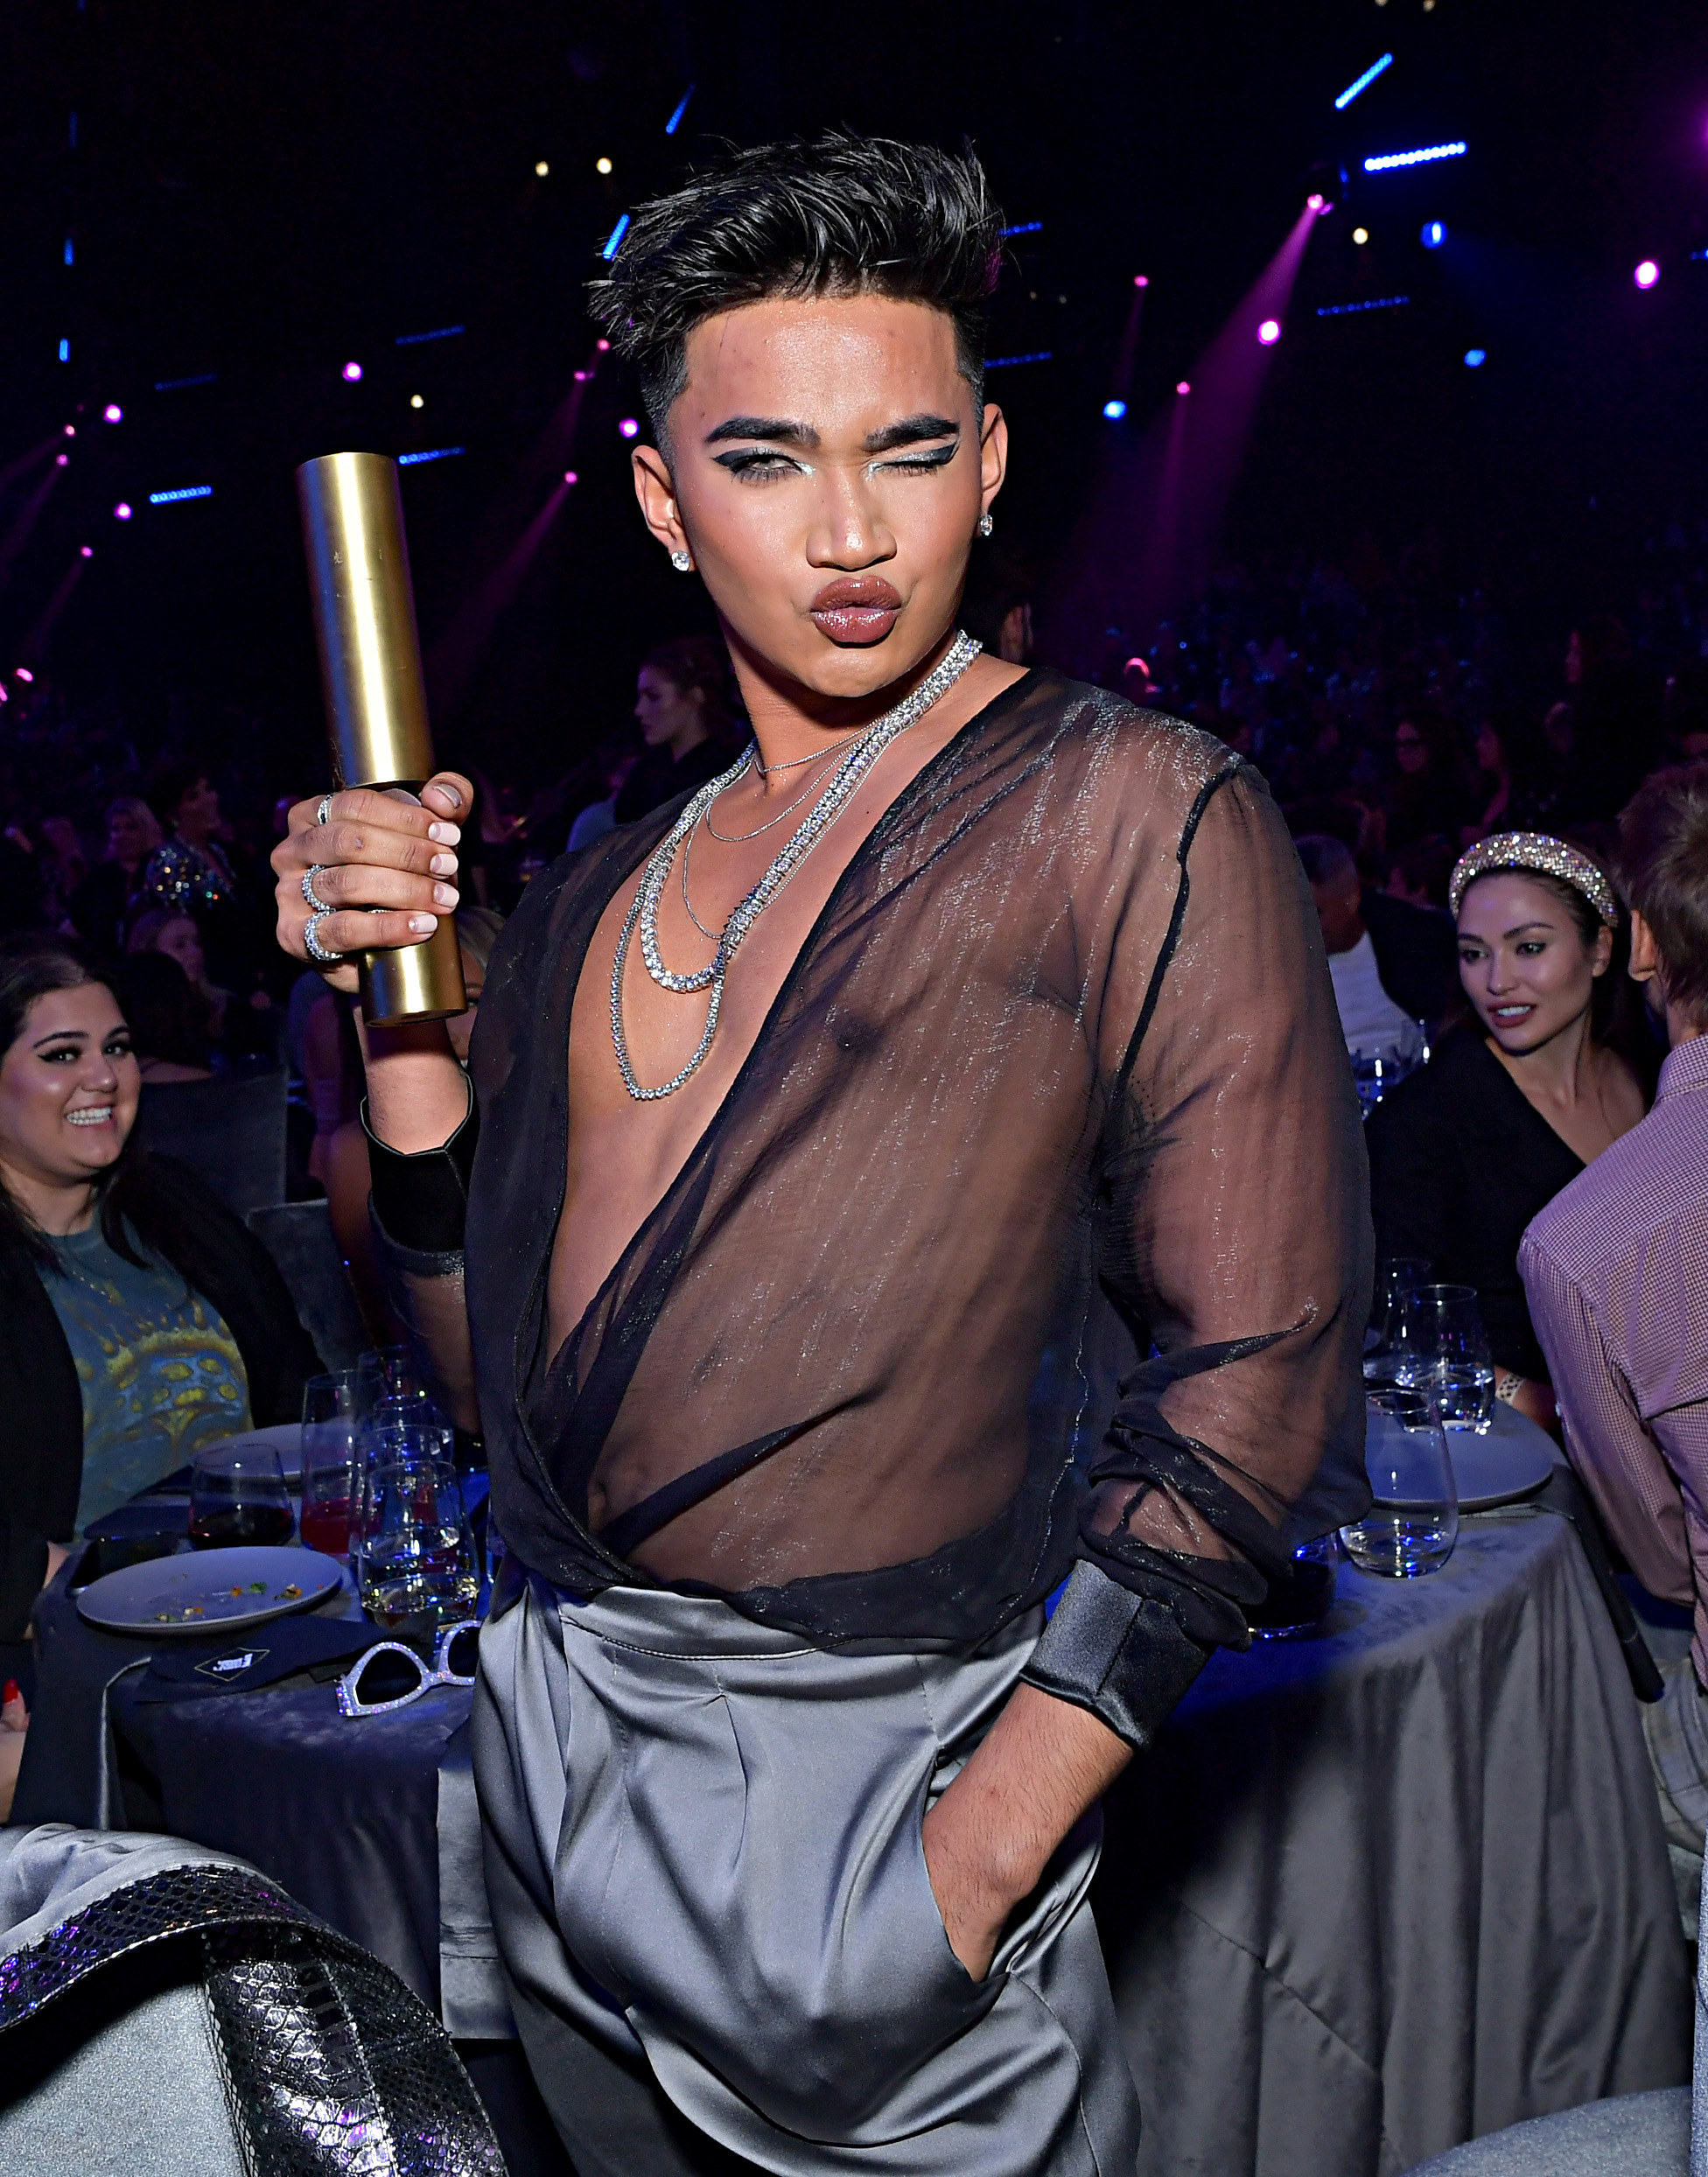 Bretman holding his award and posing for a photo